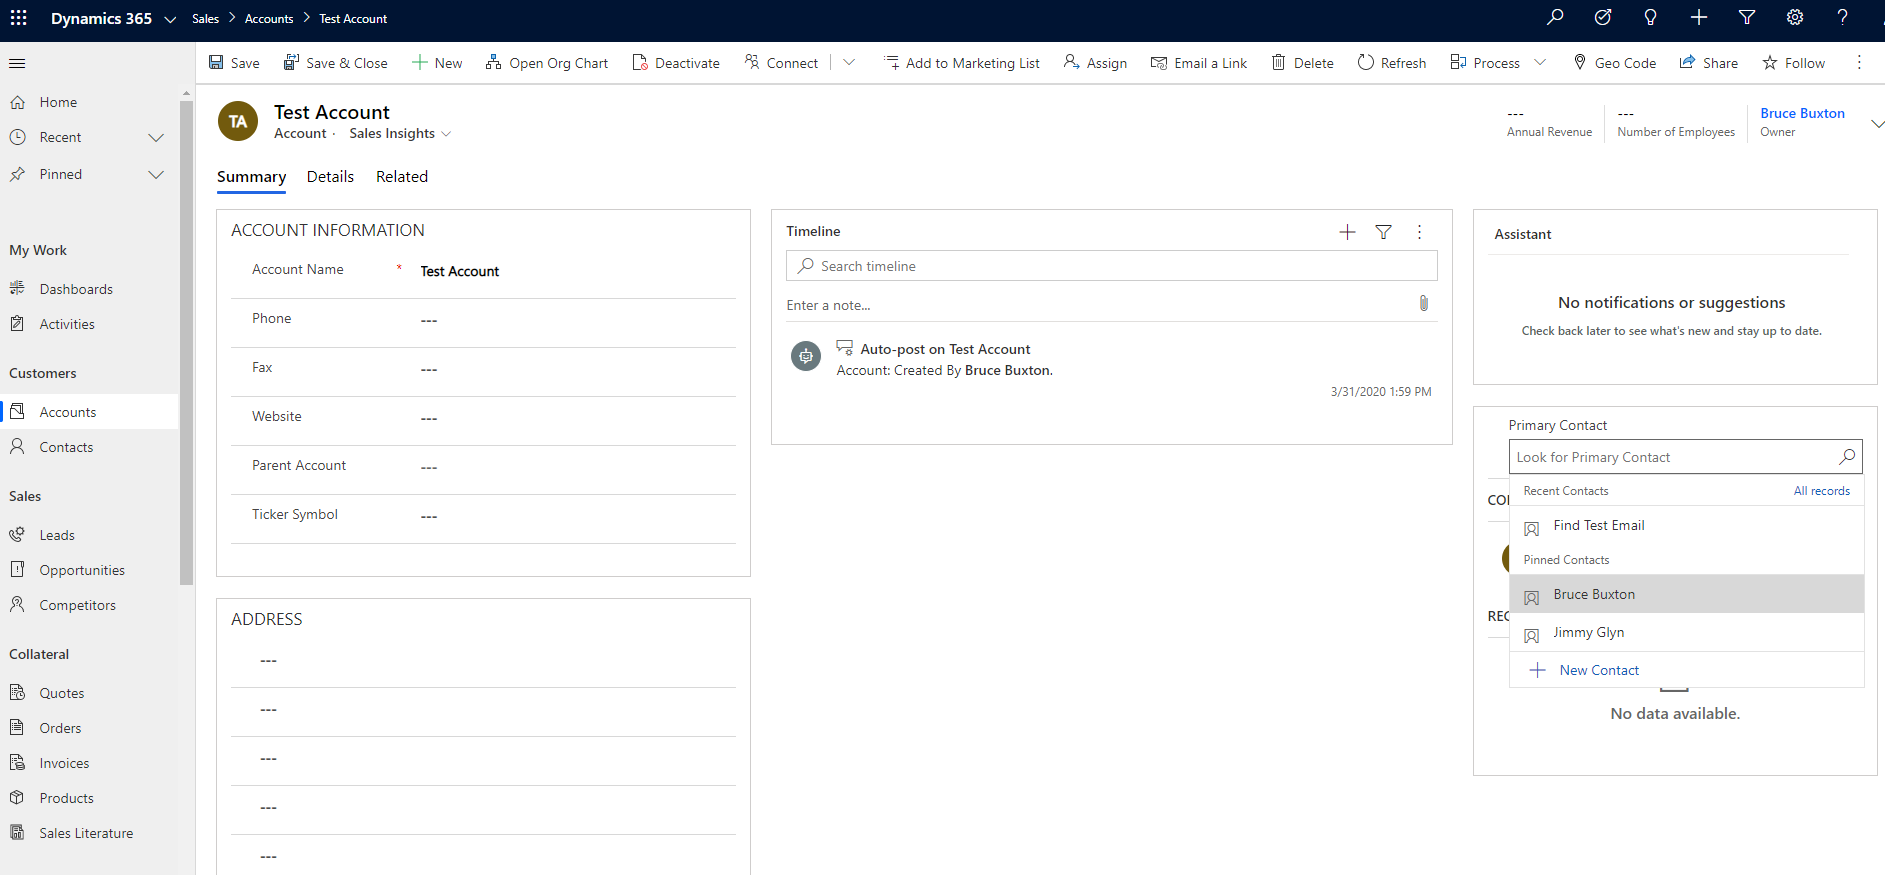 North52 Business Rules Engine for Dynamics 365 - Decision Table